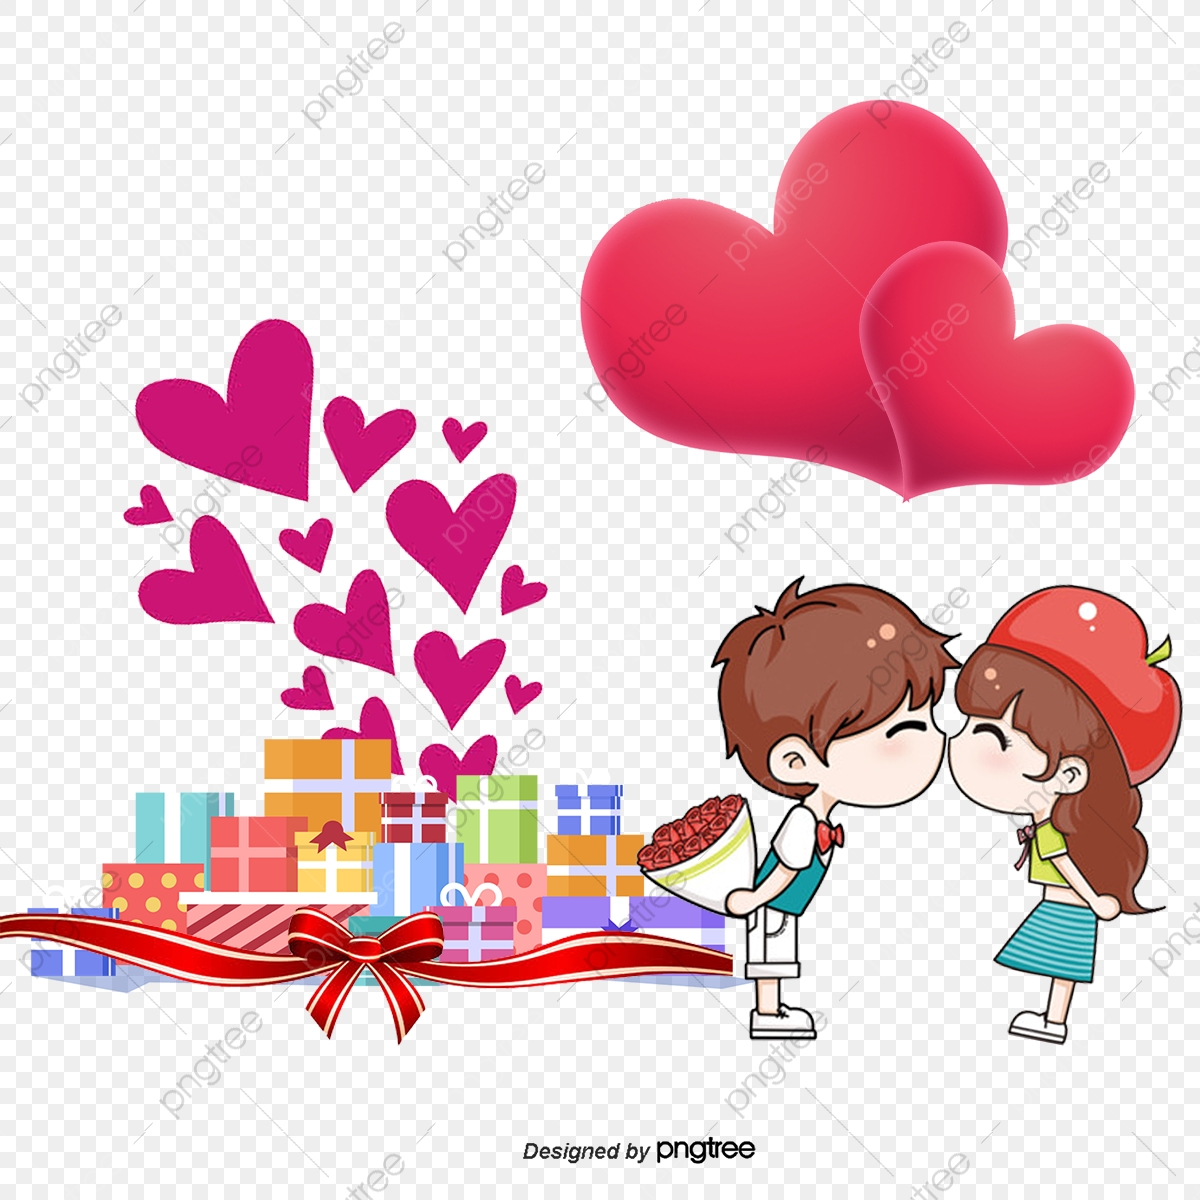 Romantic Valentine S Day Cartoon Creative Cartoon Couple Balloon Love Png Transparent Clipart Image And Psd File For Free Download